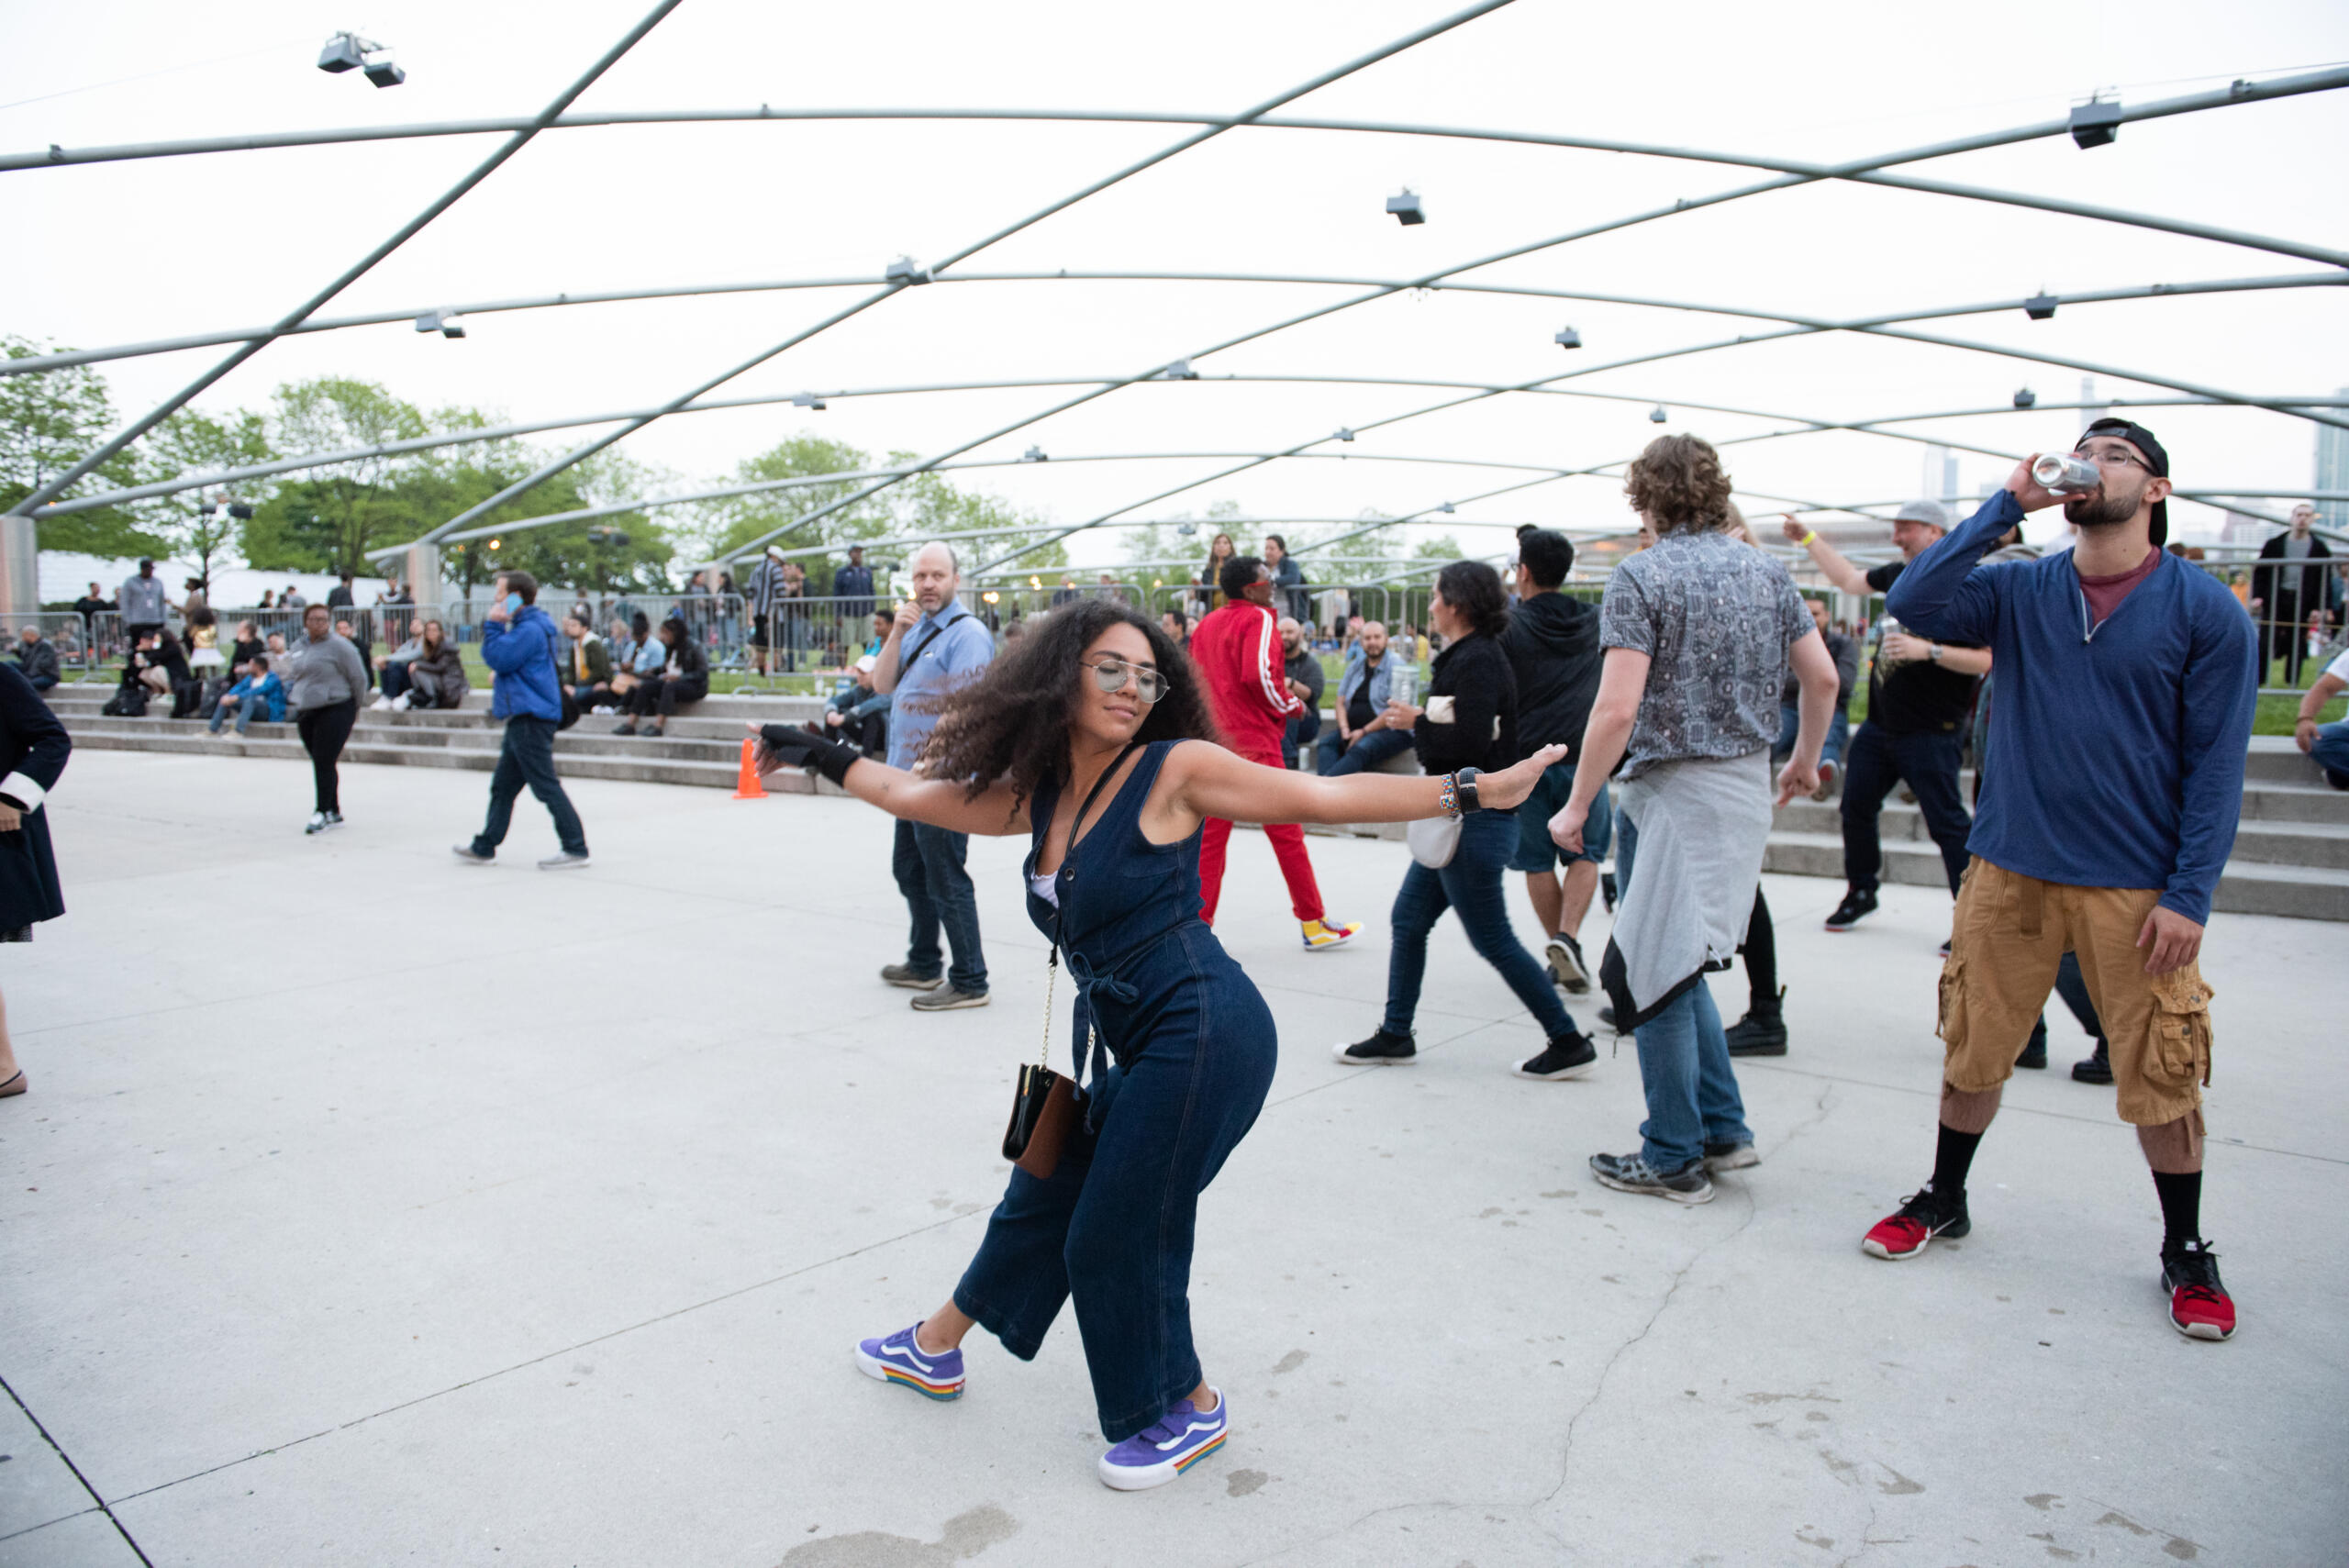 A woman dancing at Chicago's House Music Festival